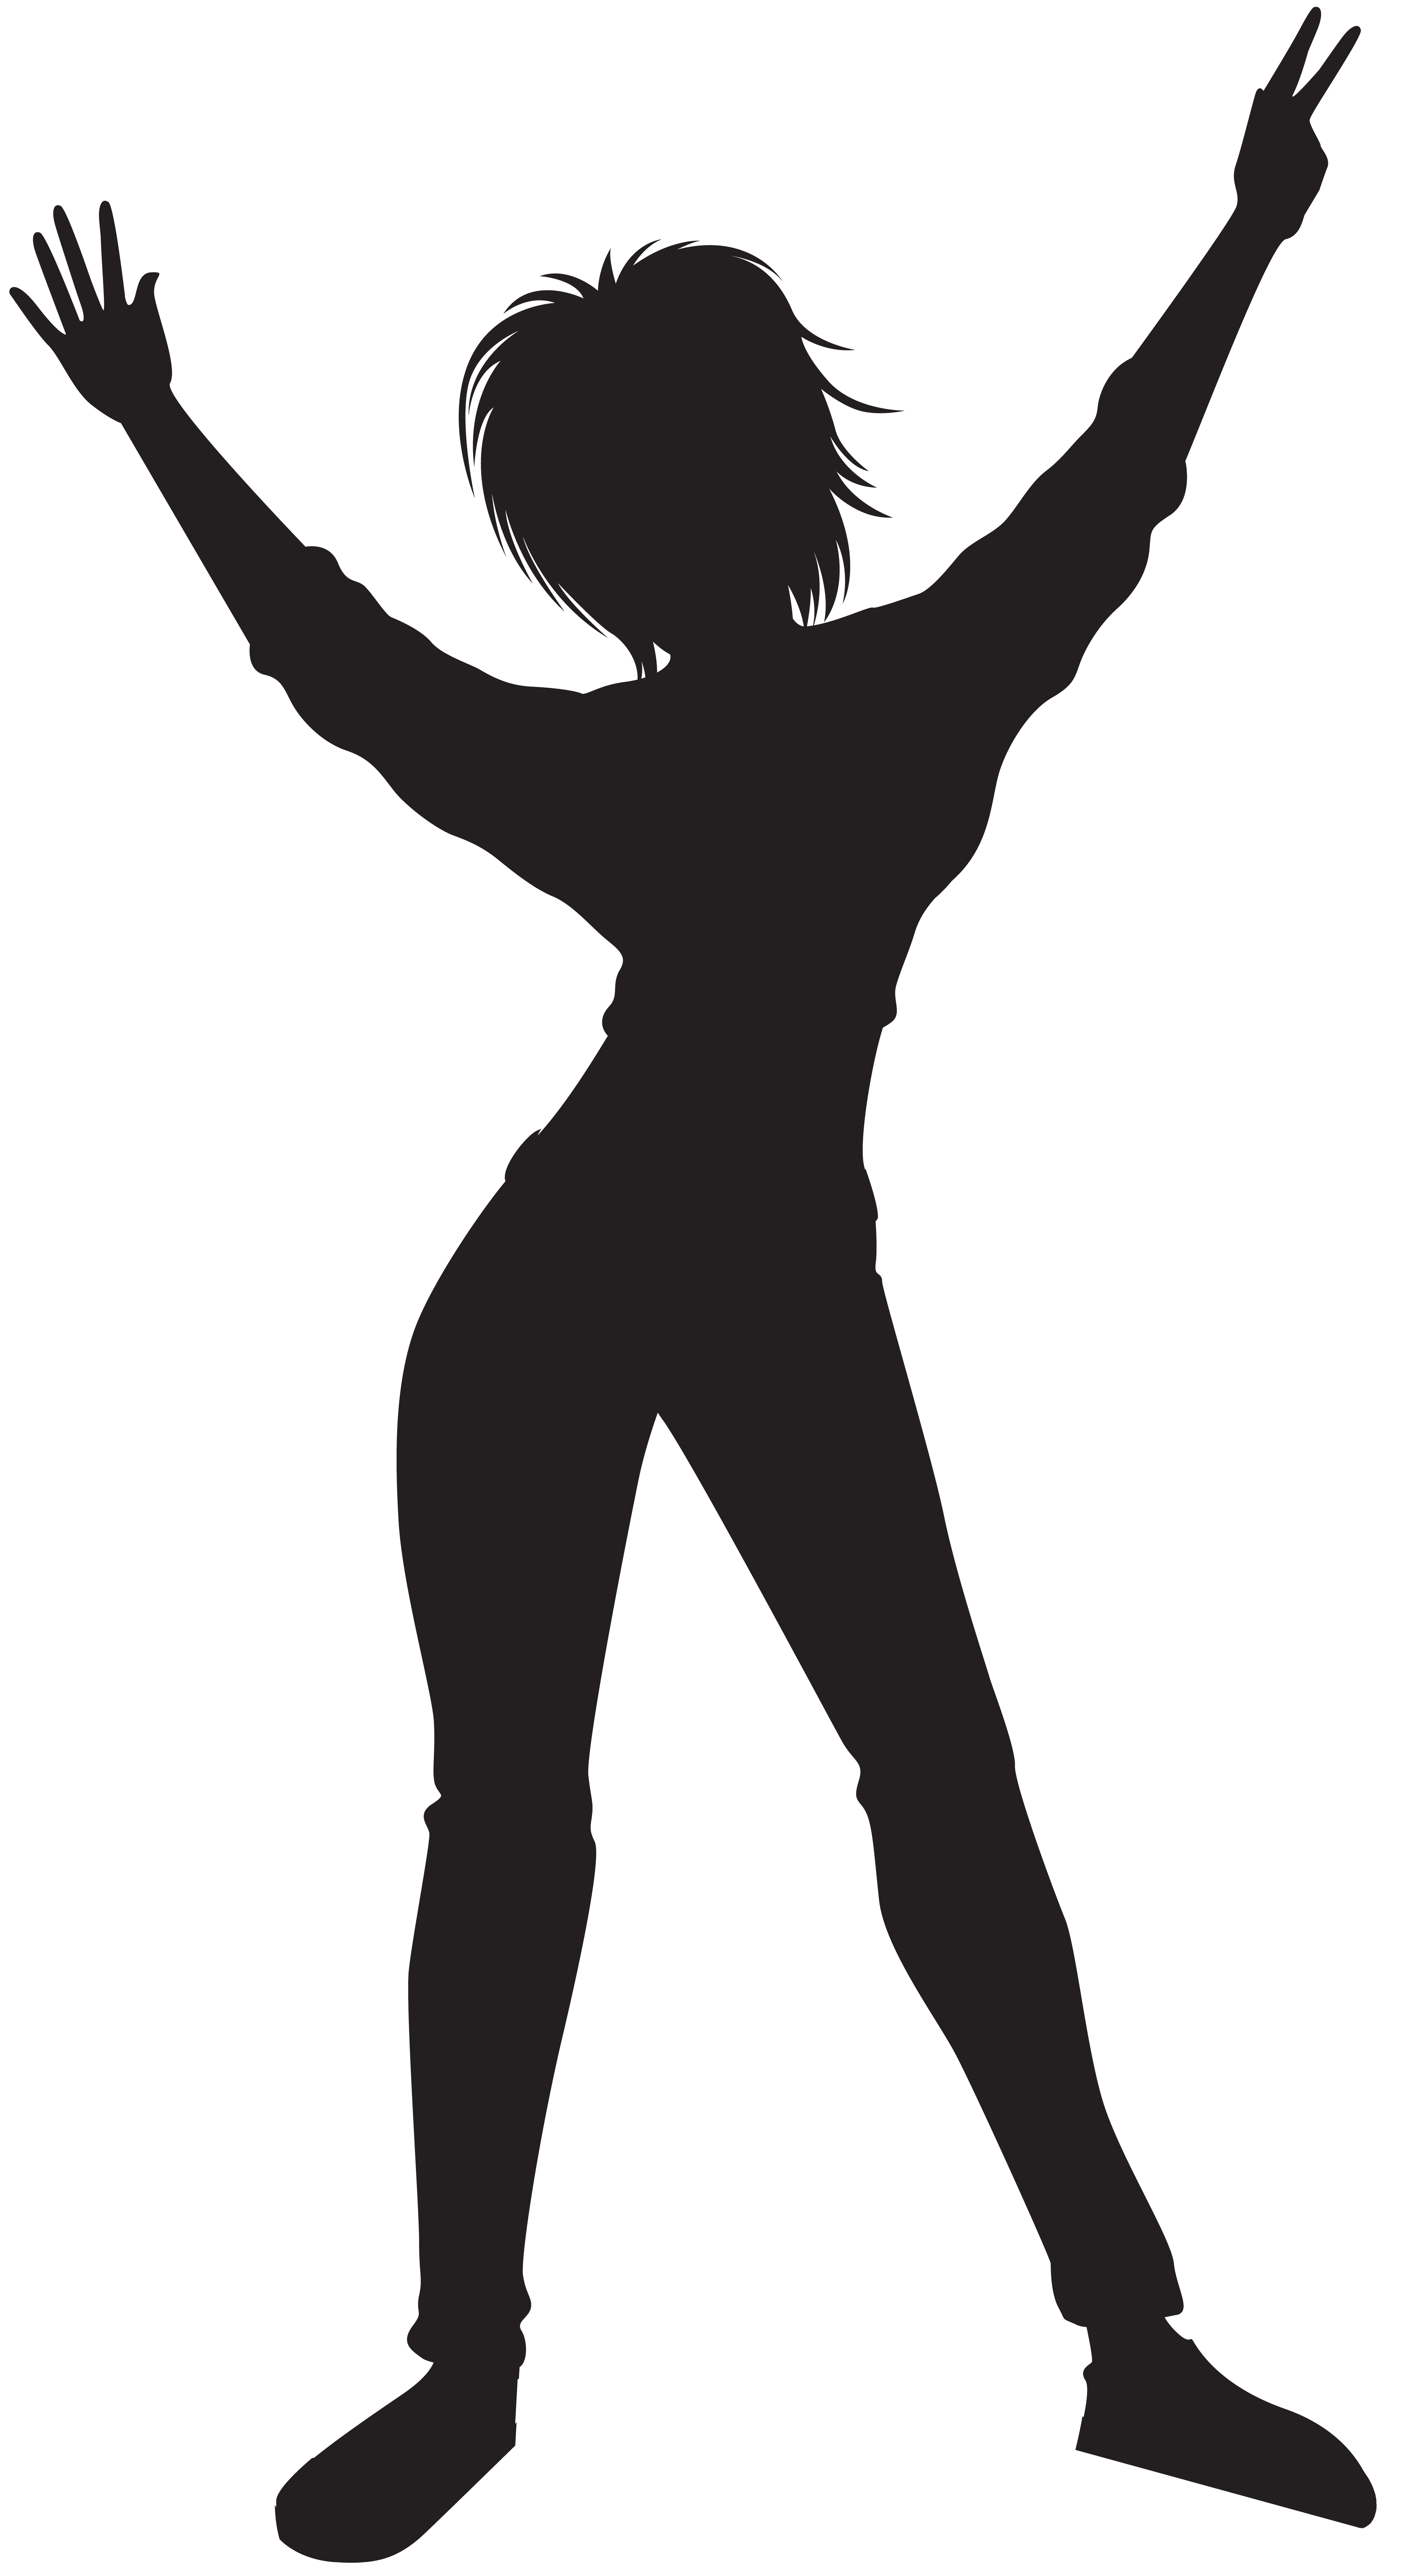 Hearts clipart dance. Dancing girl silhouette png